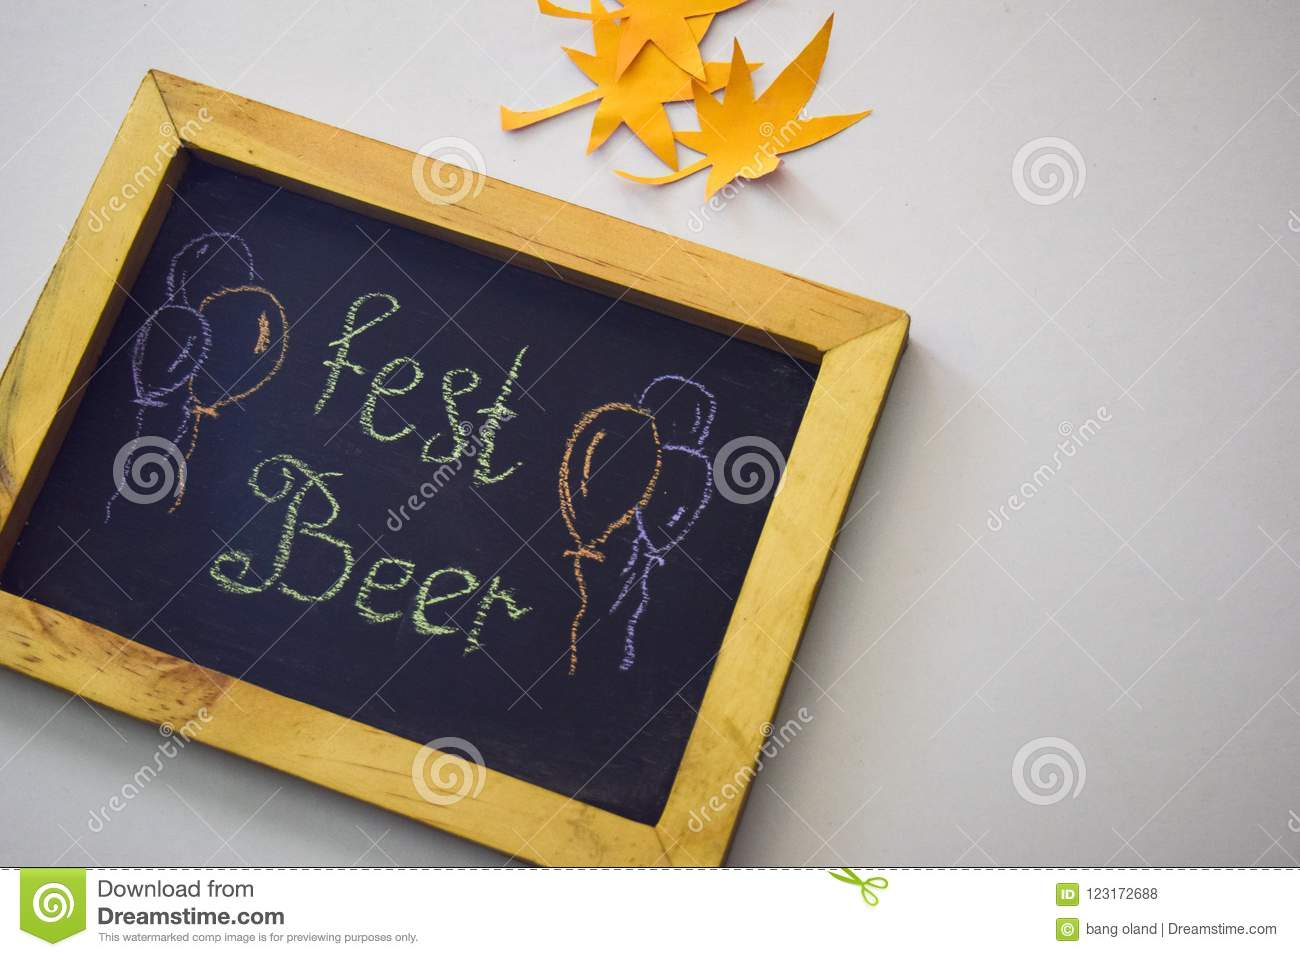 Celebrate october festival - clothes pins on grey/white background and a chalkboard with the slogan `Fest Beer`